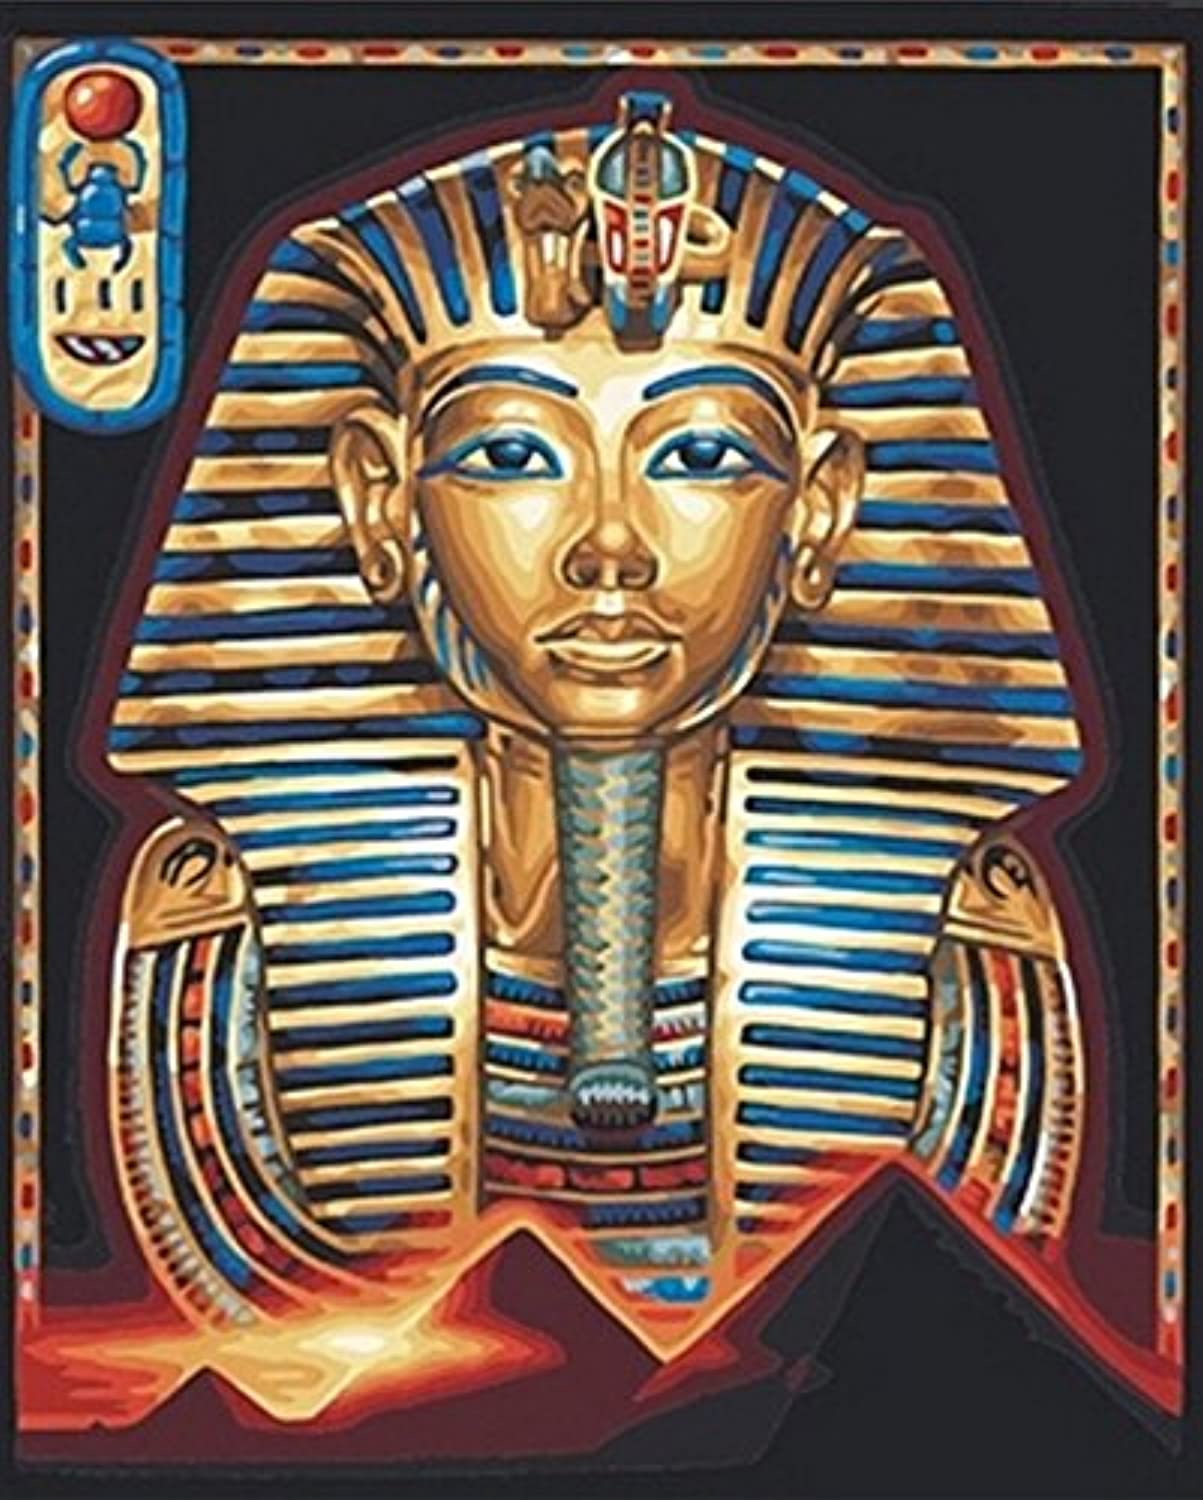 Yumeart 3D Diamond Painting by Number Pharaoh Mosaic Cross-Stitch Needlework Religion Egypt Icons Pictures 30x40cm(12x16